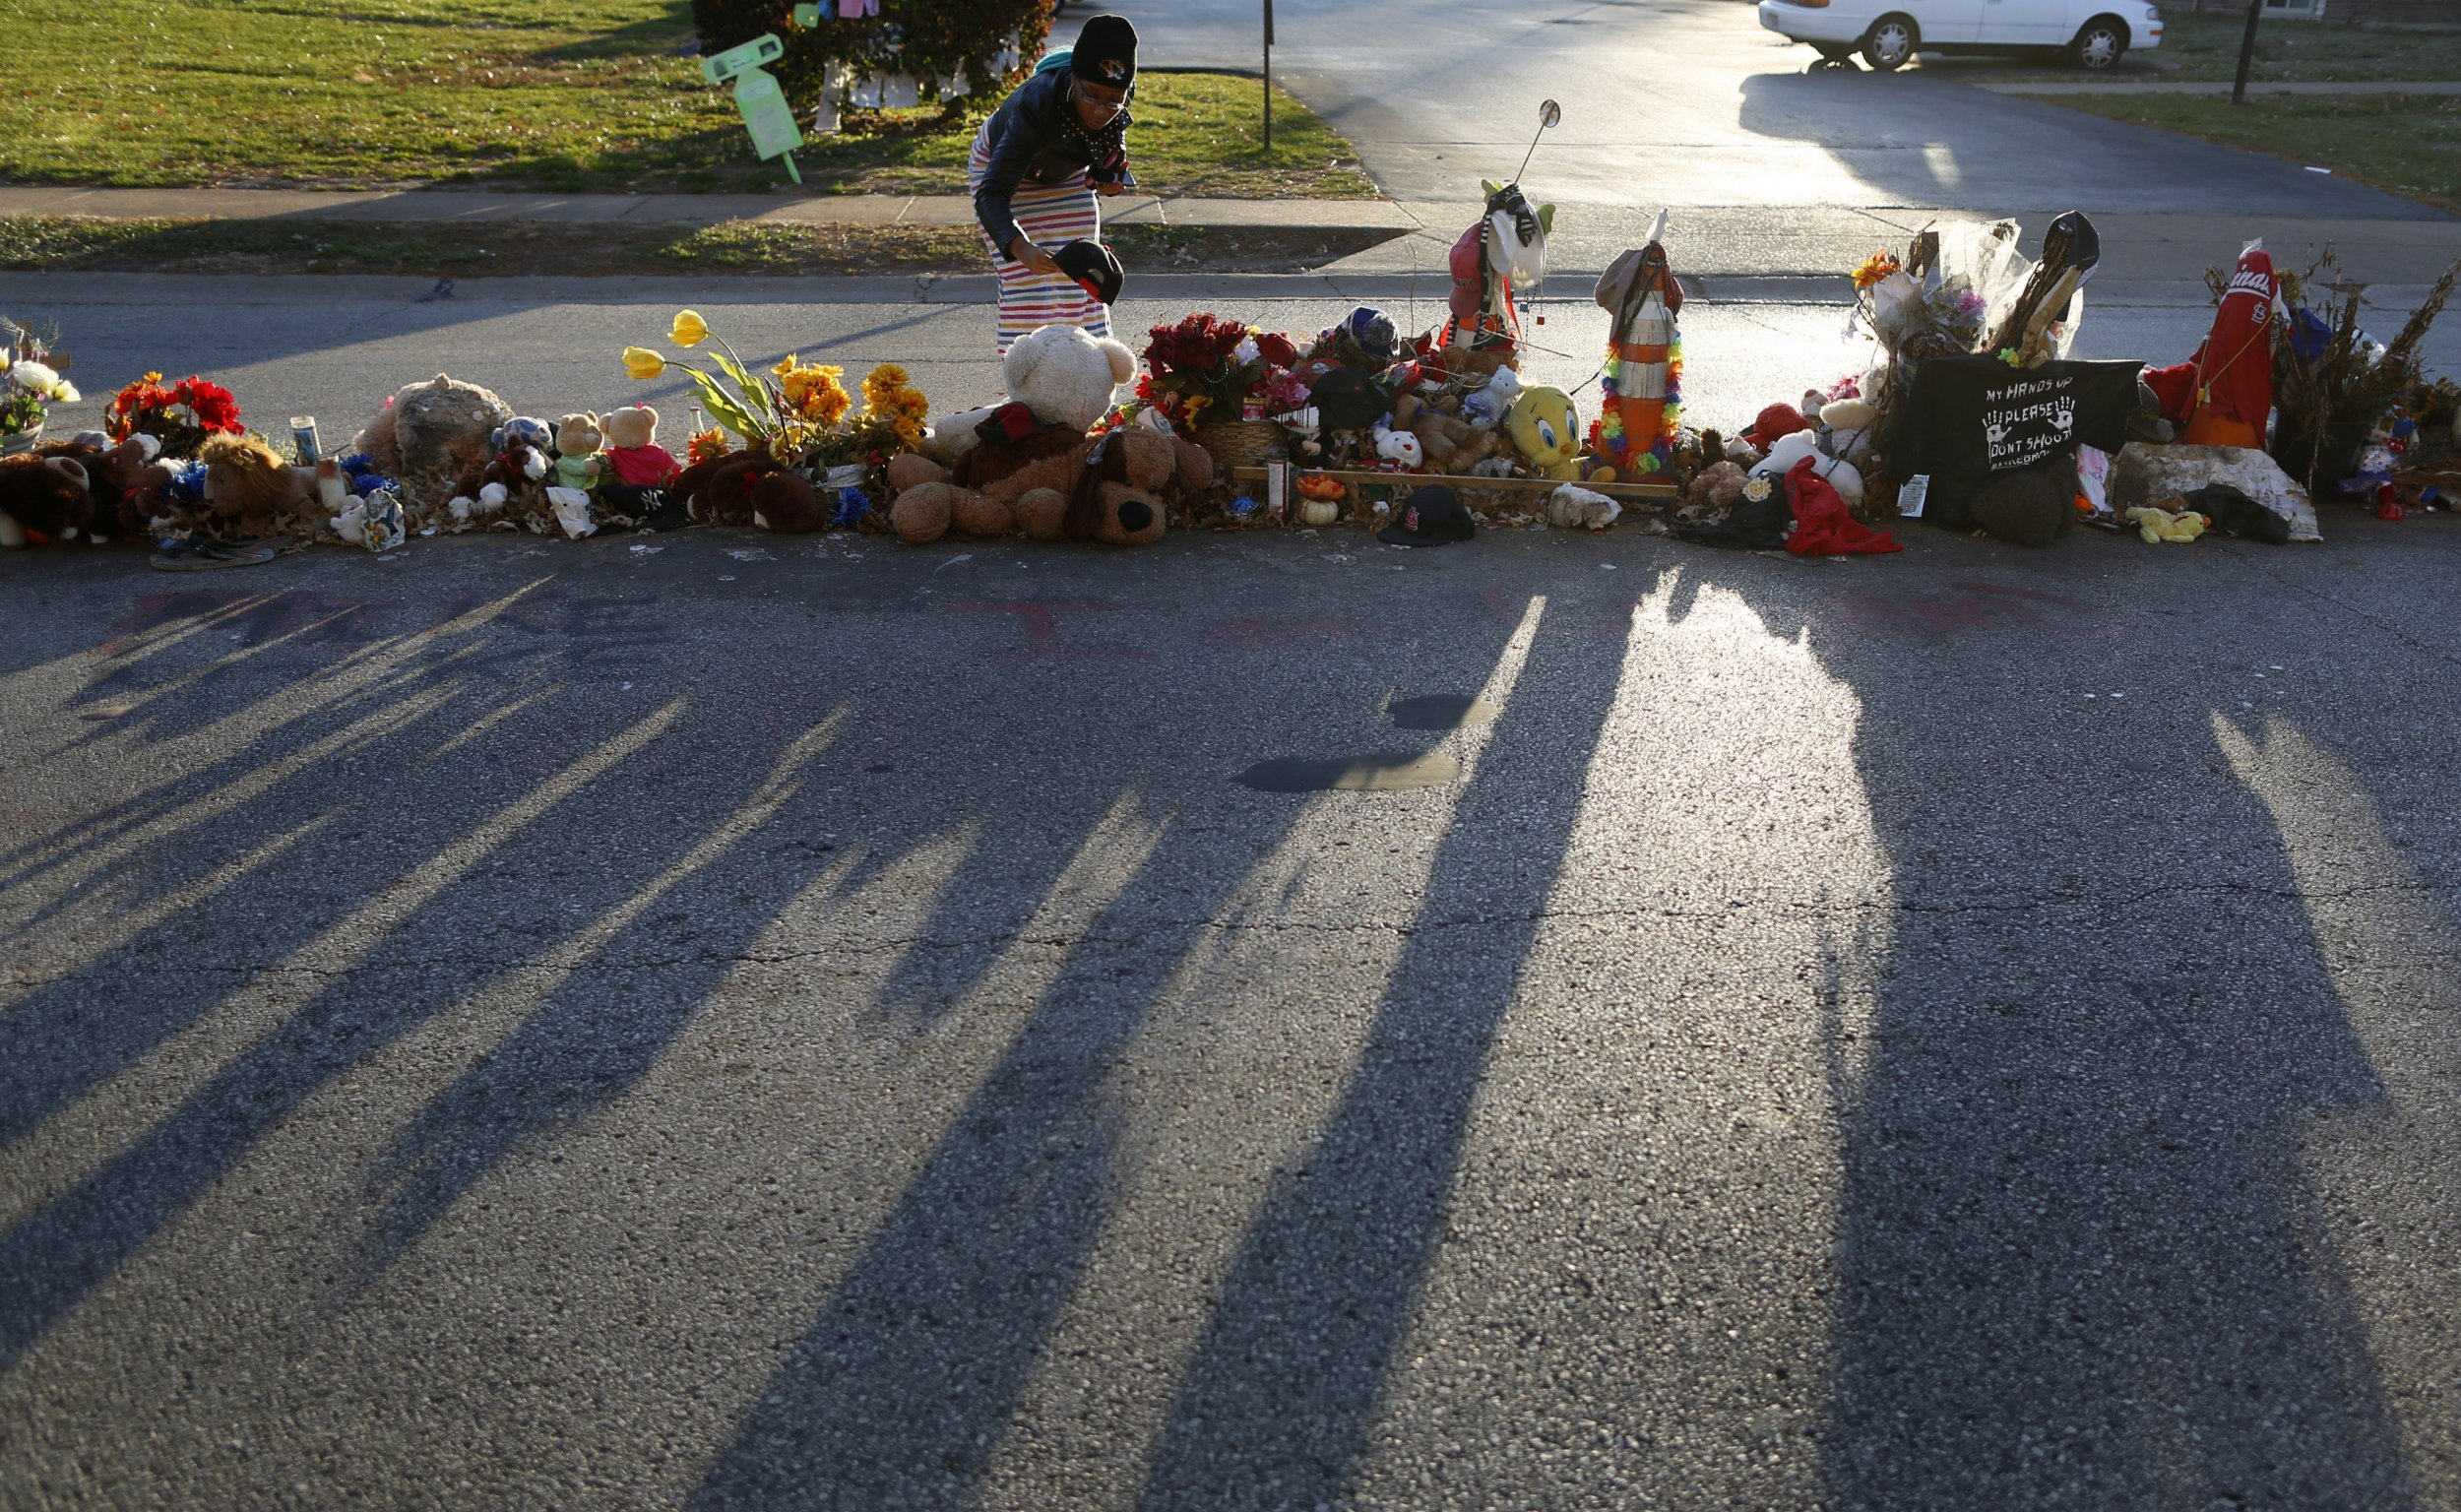 12-29-14 Mike Brown memorial